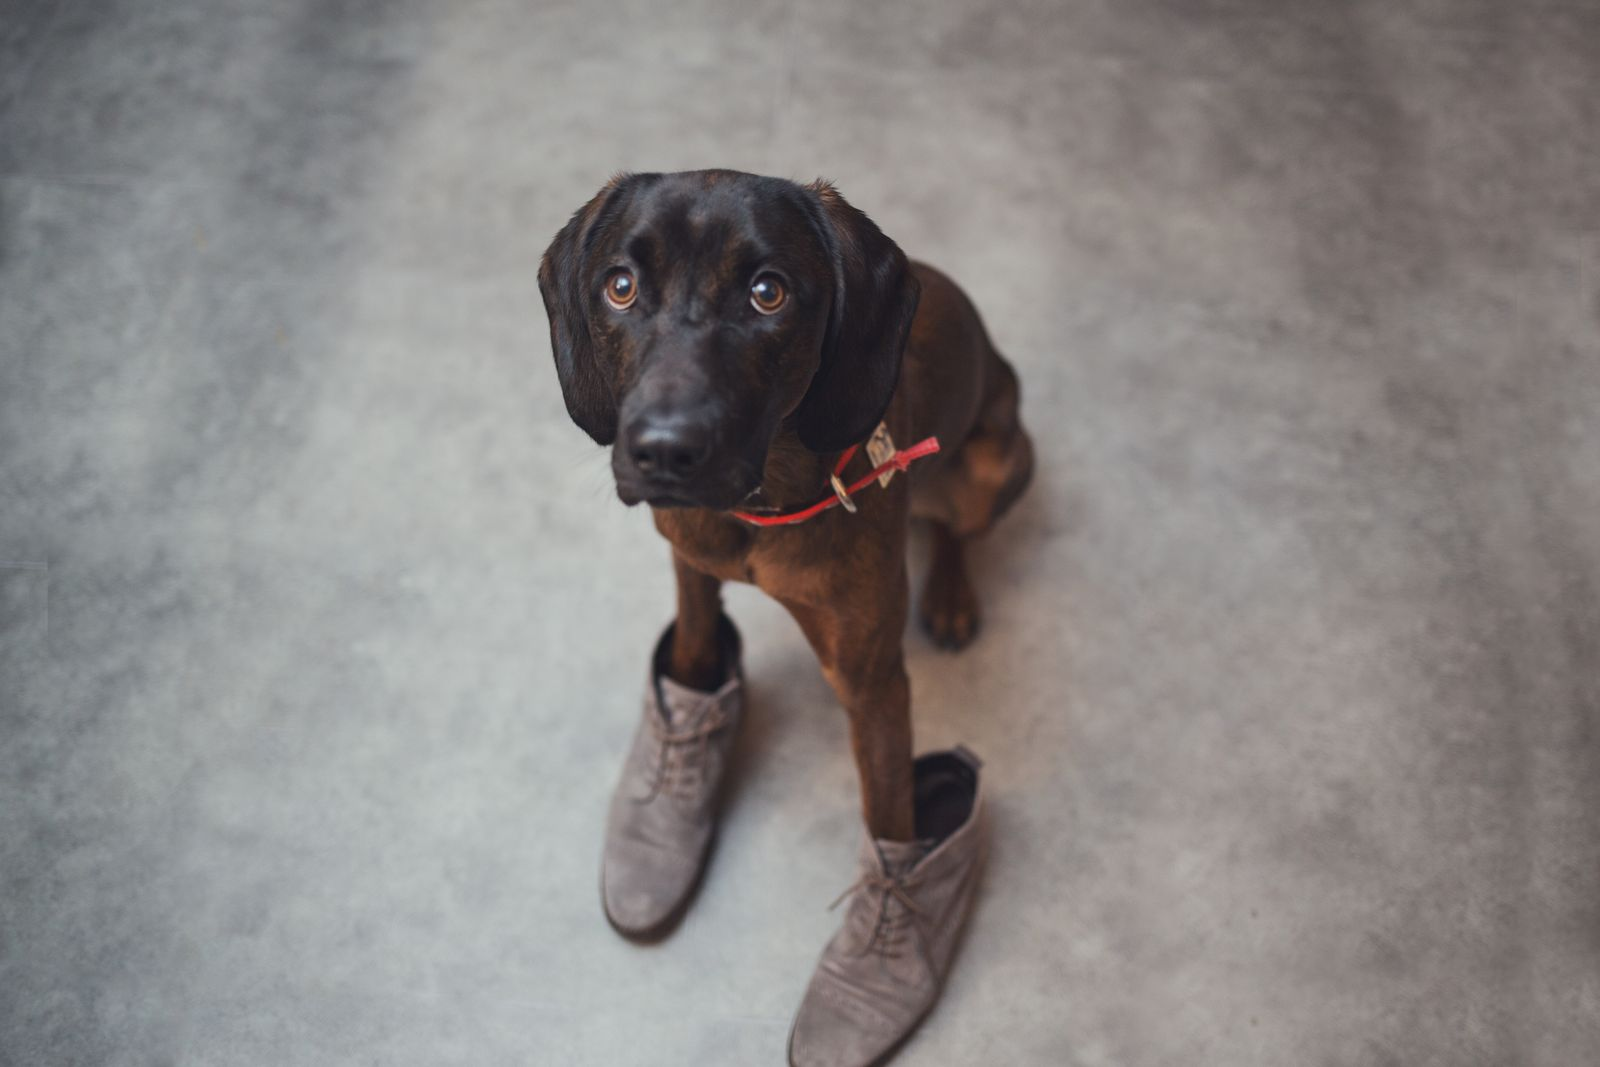 Cute purebred dog wearing owner's shoes